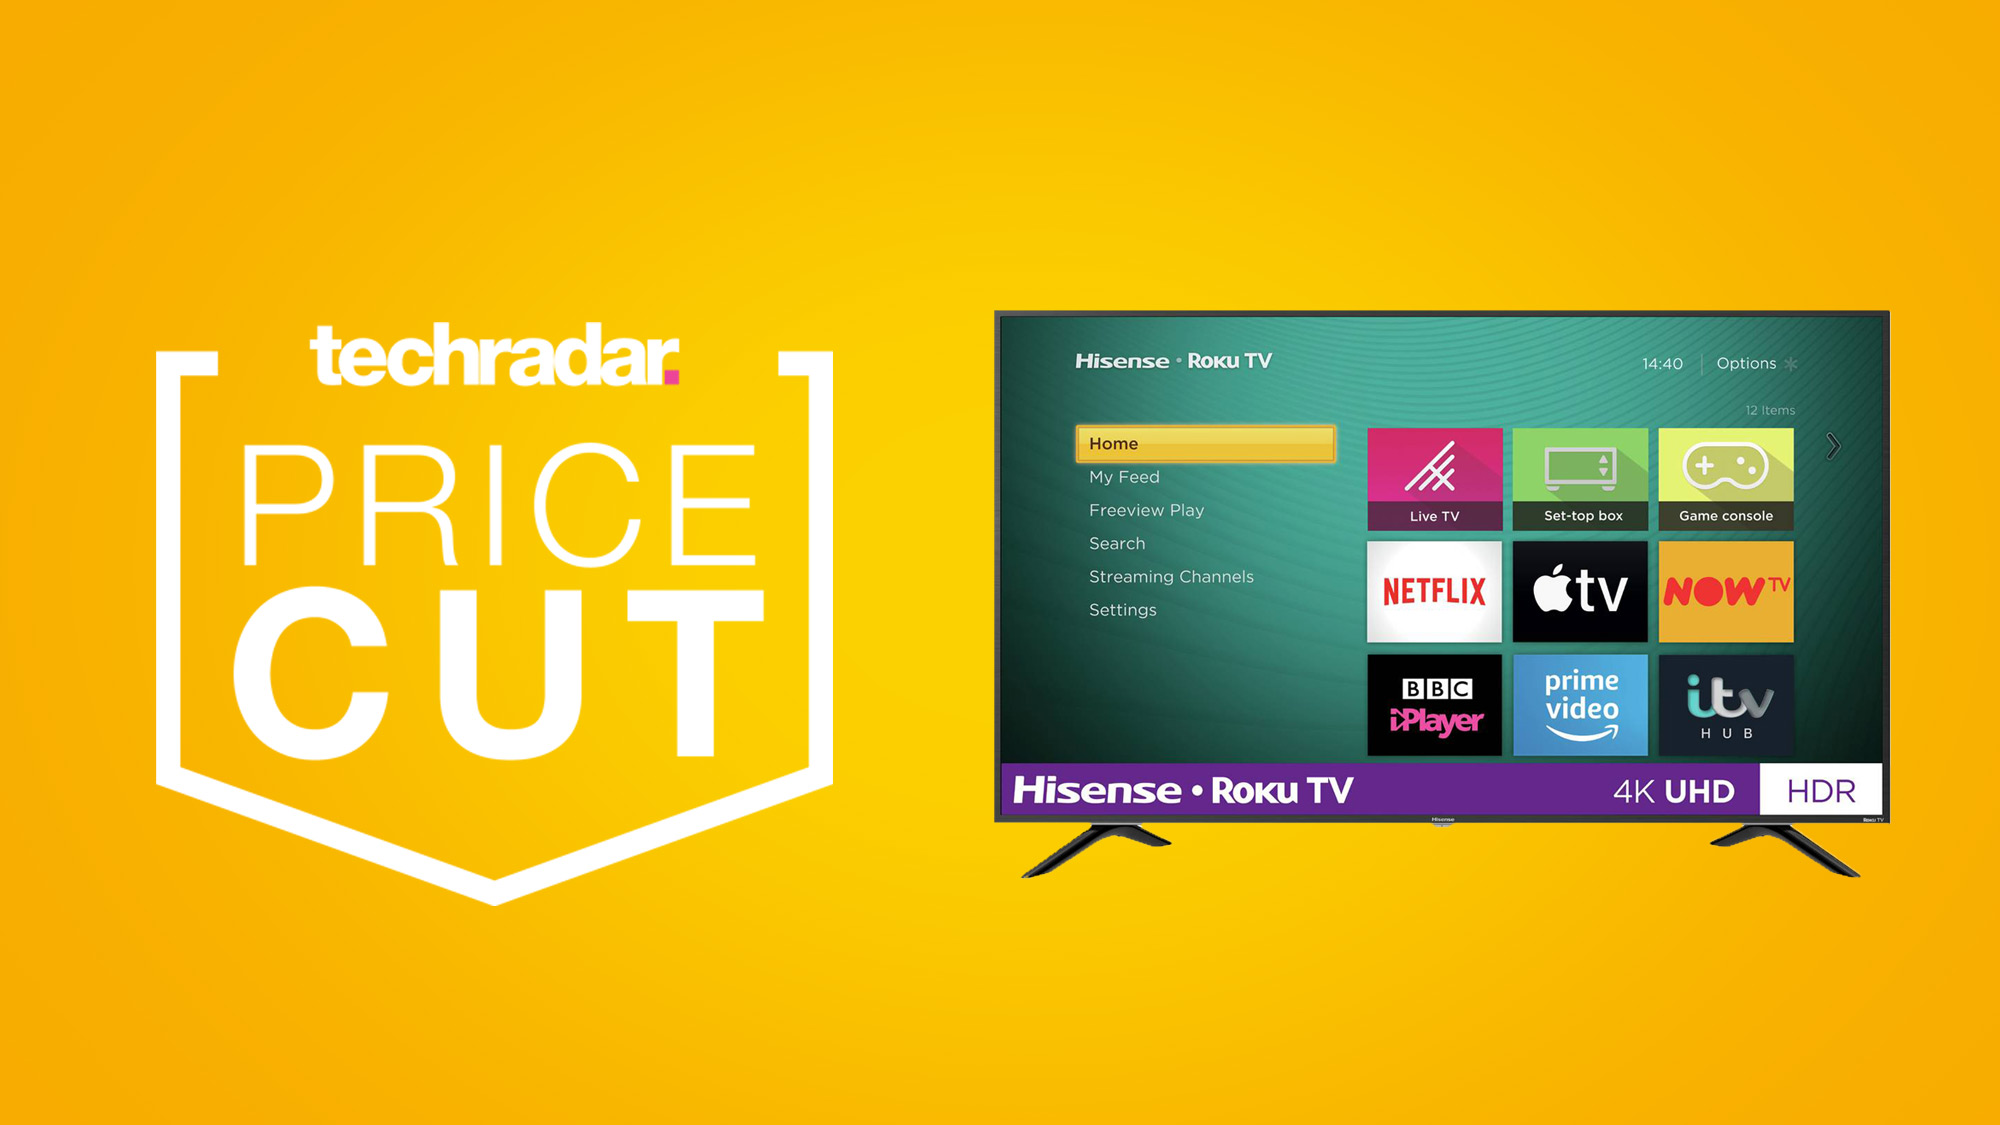 There's £80 off this 43-inch Hisense Roku TV in this fantastic Boxing Day Sale